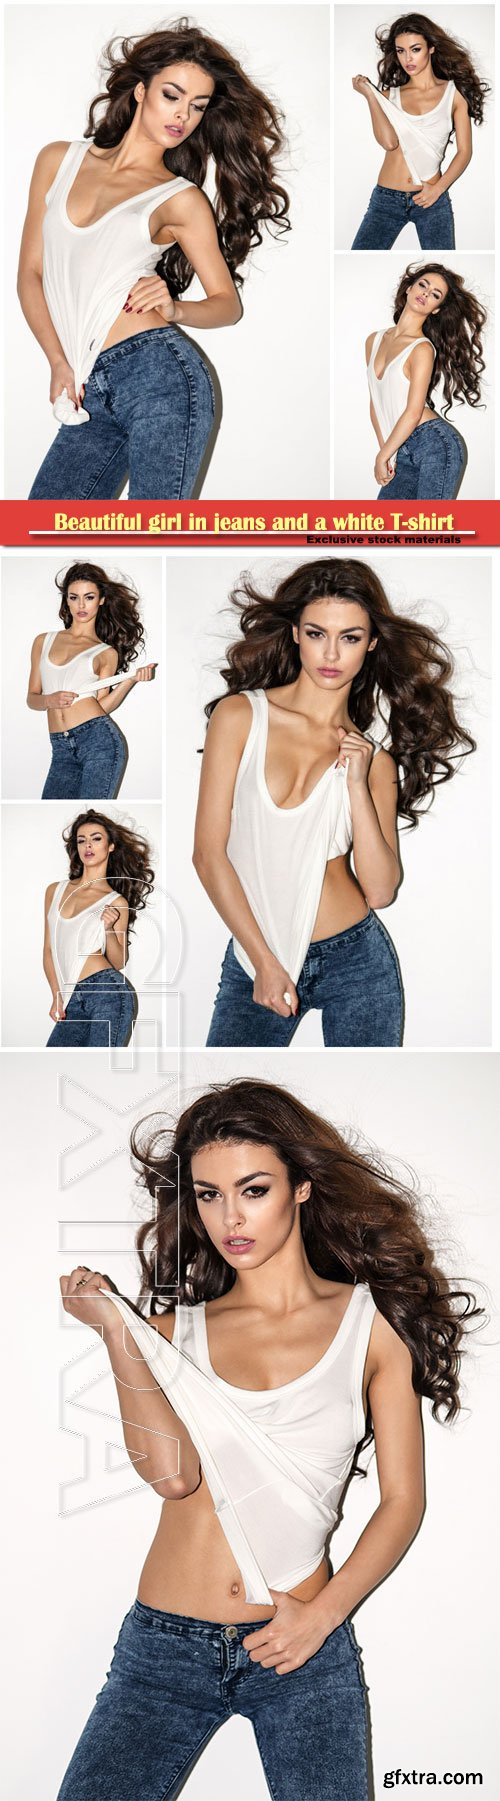 Beautiful girl in jeans and a white T-shirt